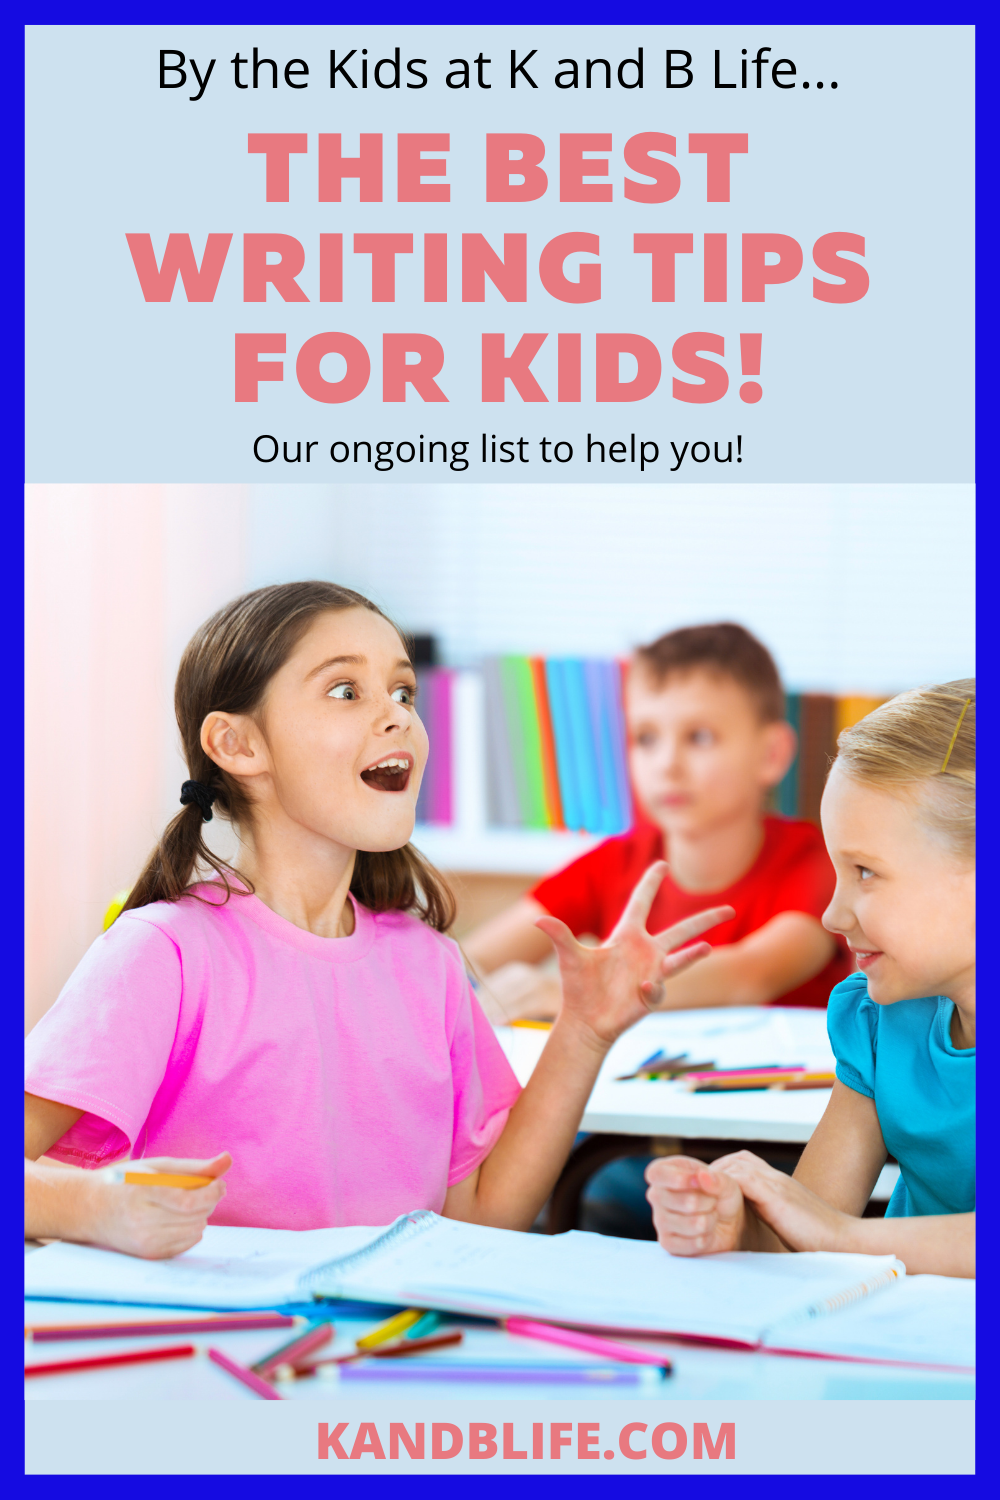 A girl looking excited for the The Best Writing Tips for Kids Article.